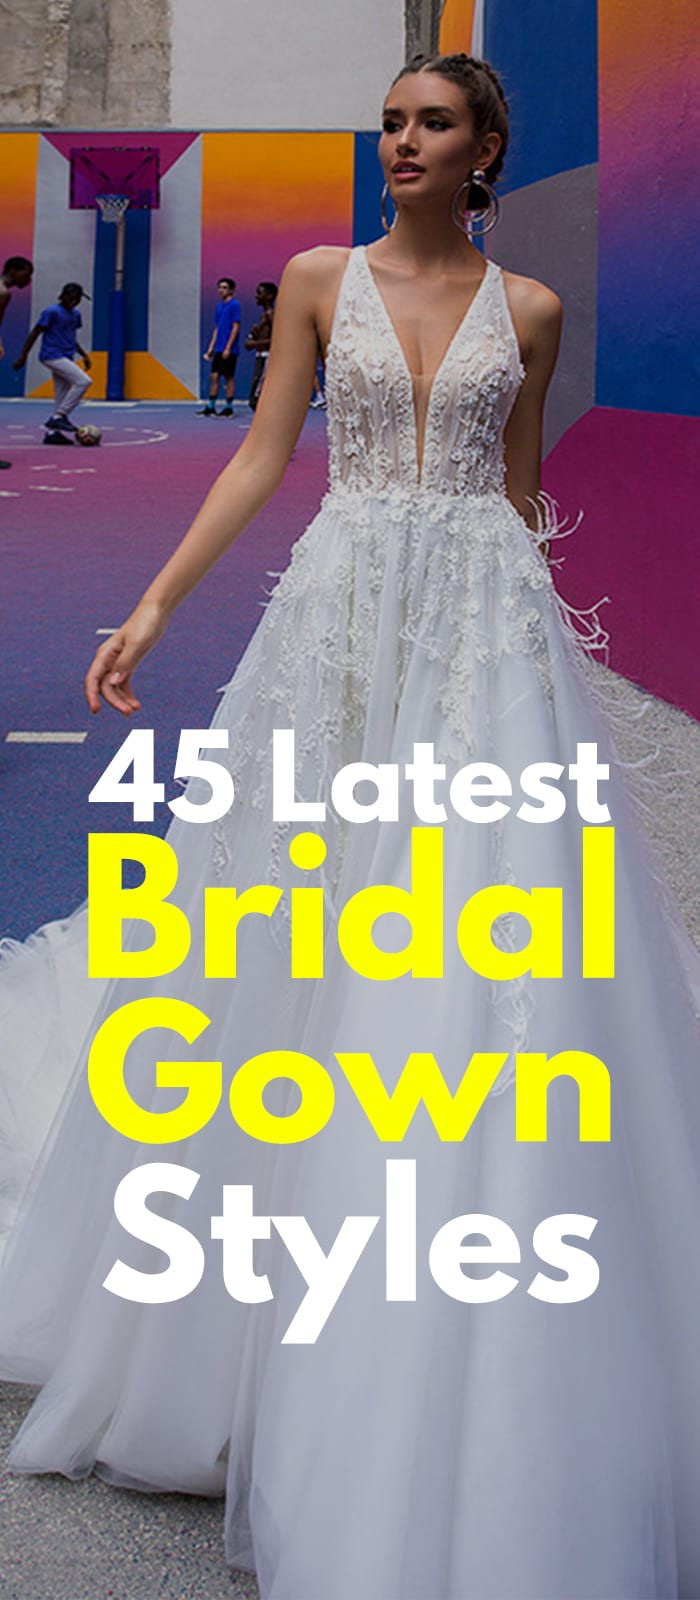 45 latest Bridal Gown